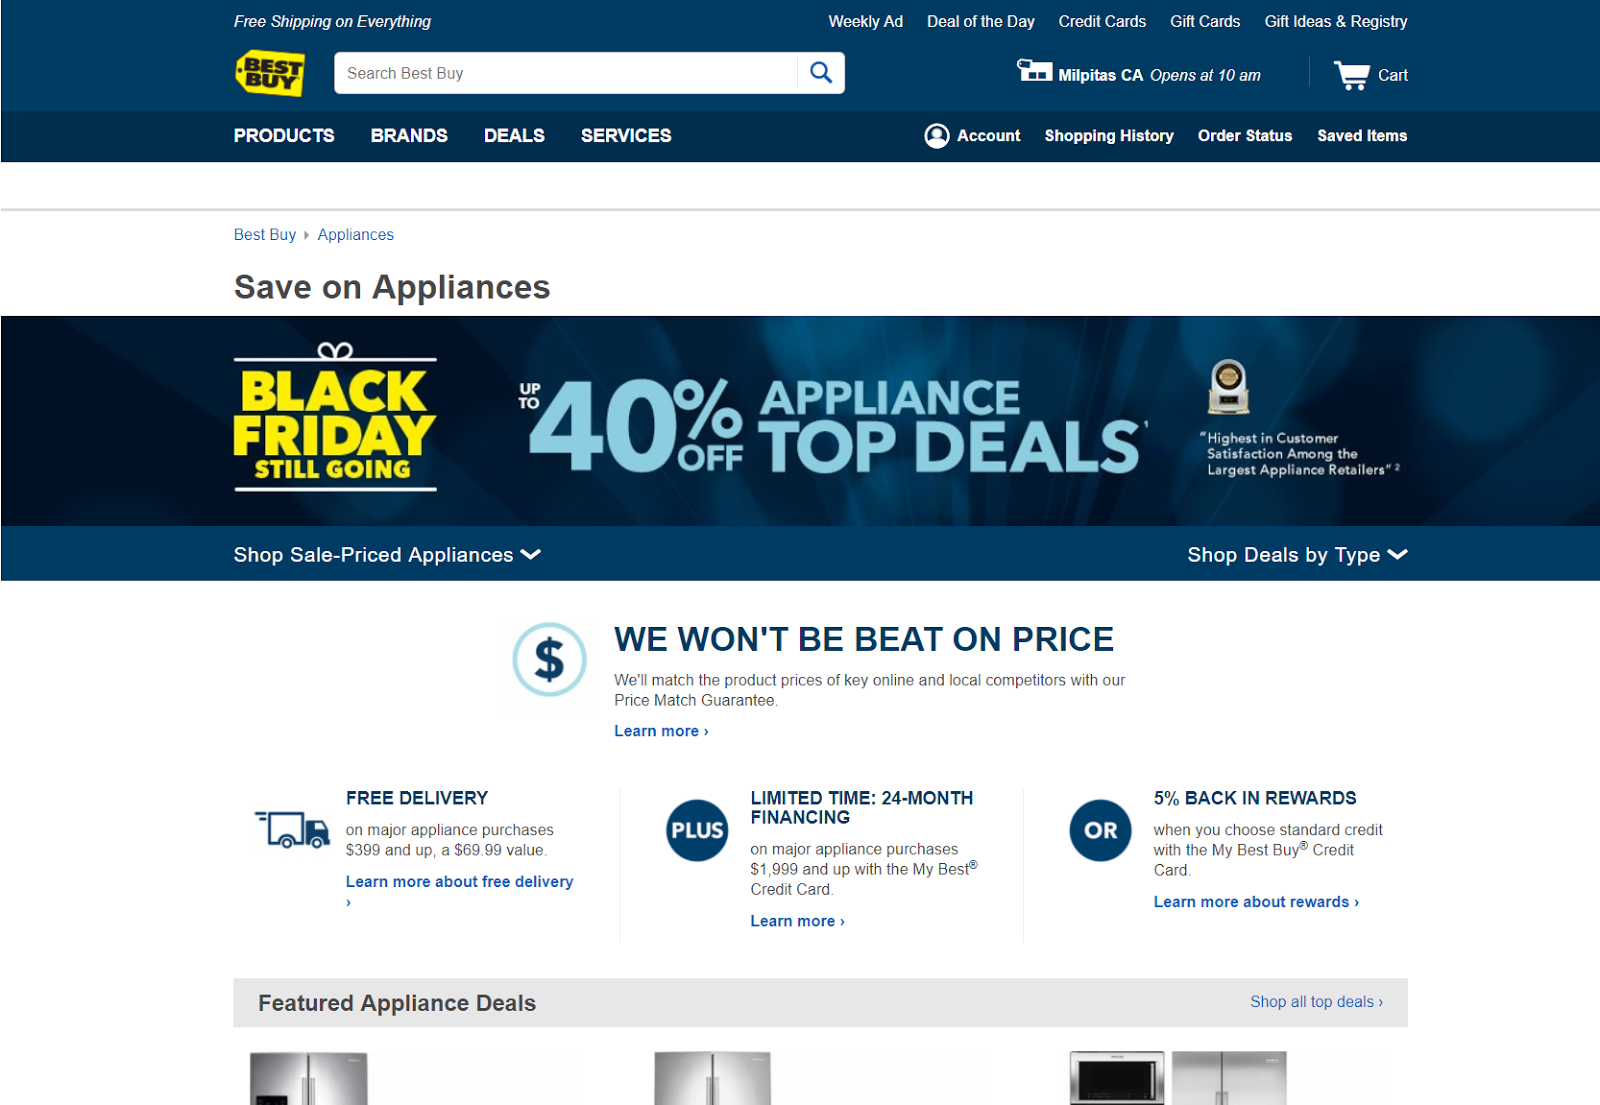 Retail Conversion Lessons: Best Buy makes the best parts of their value proposition obvious.